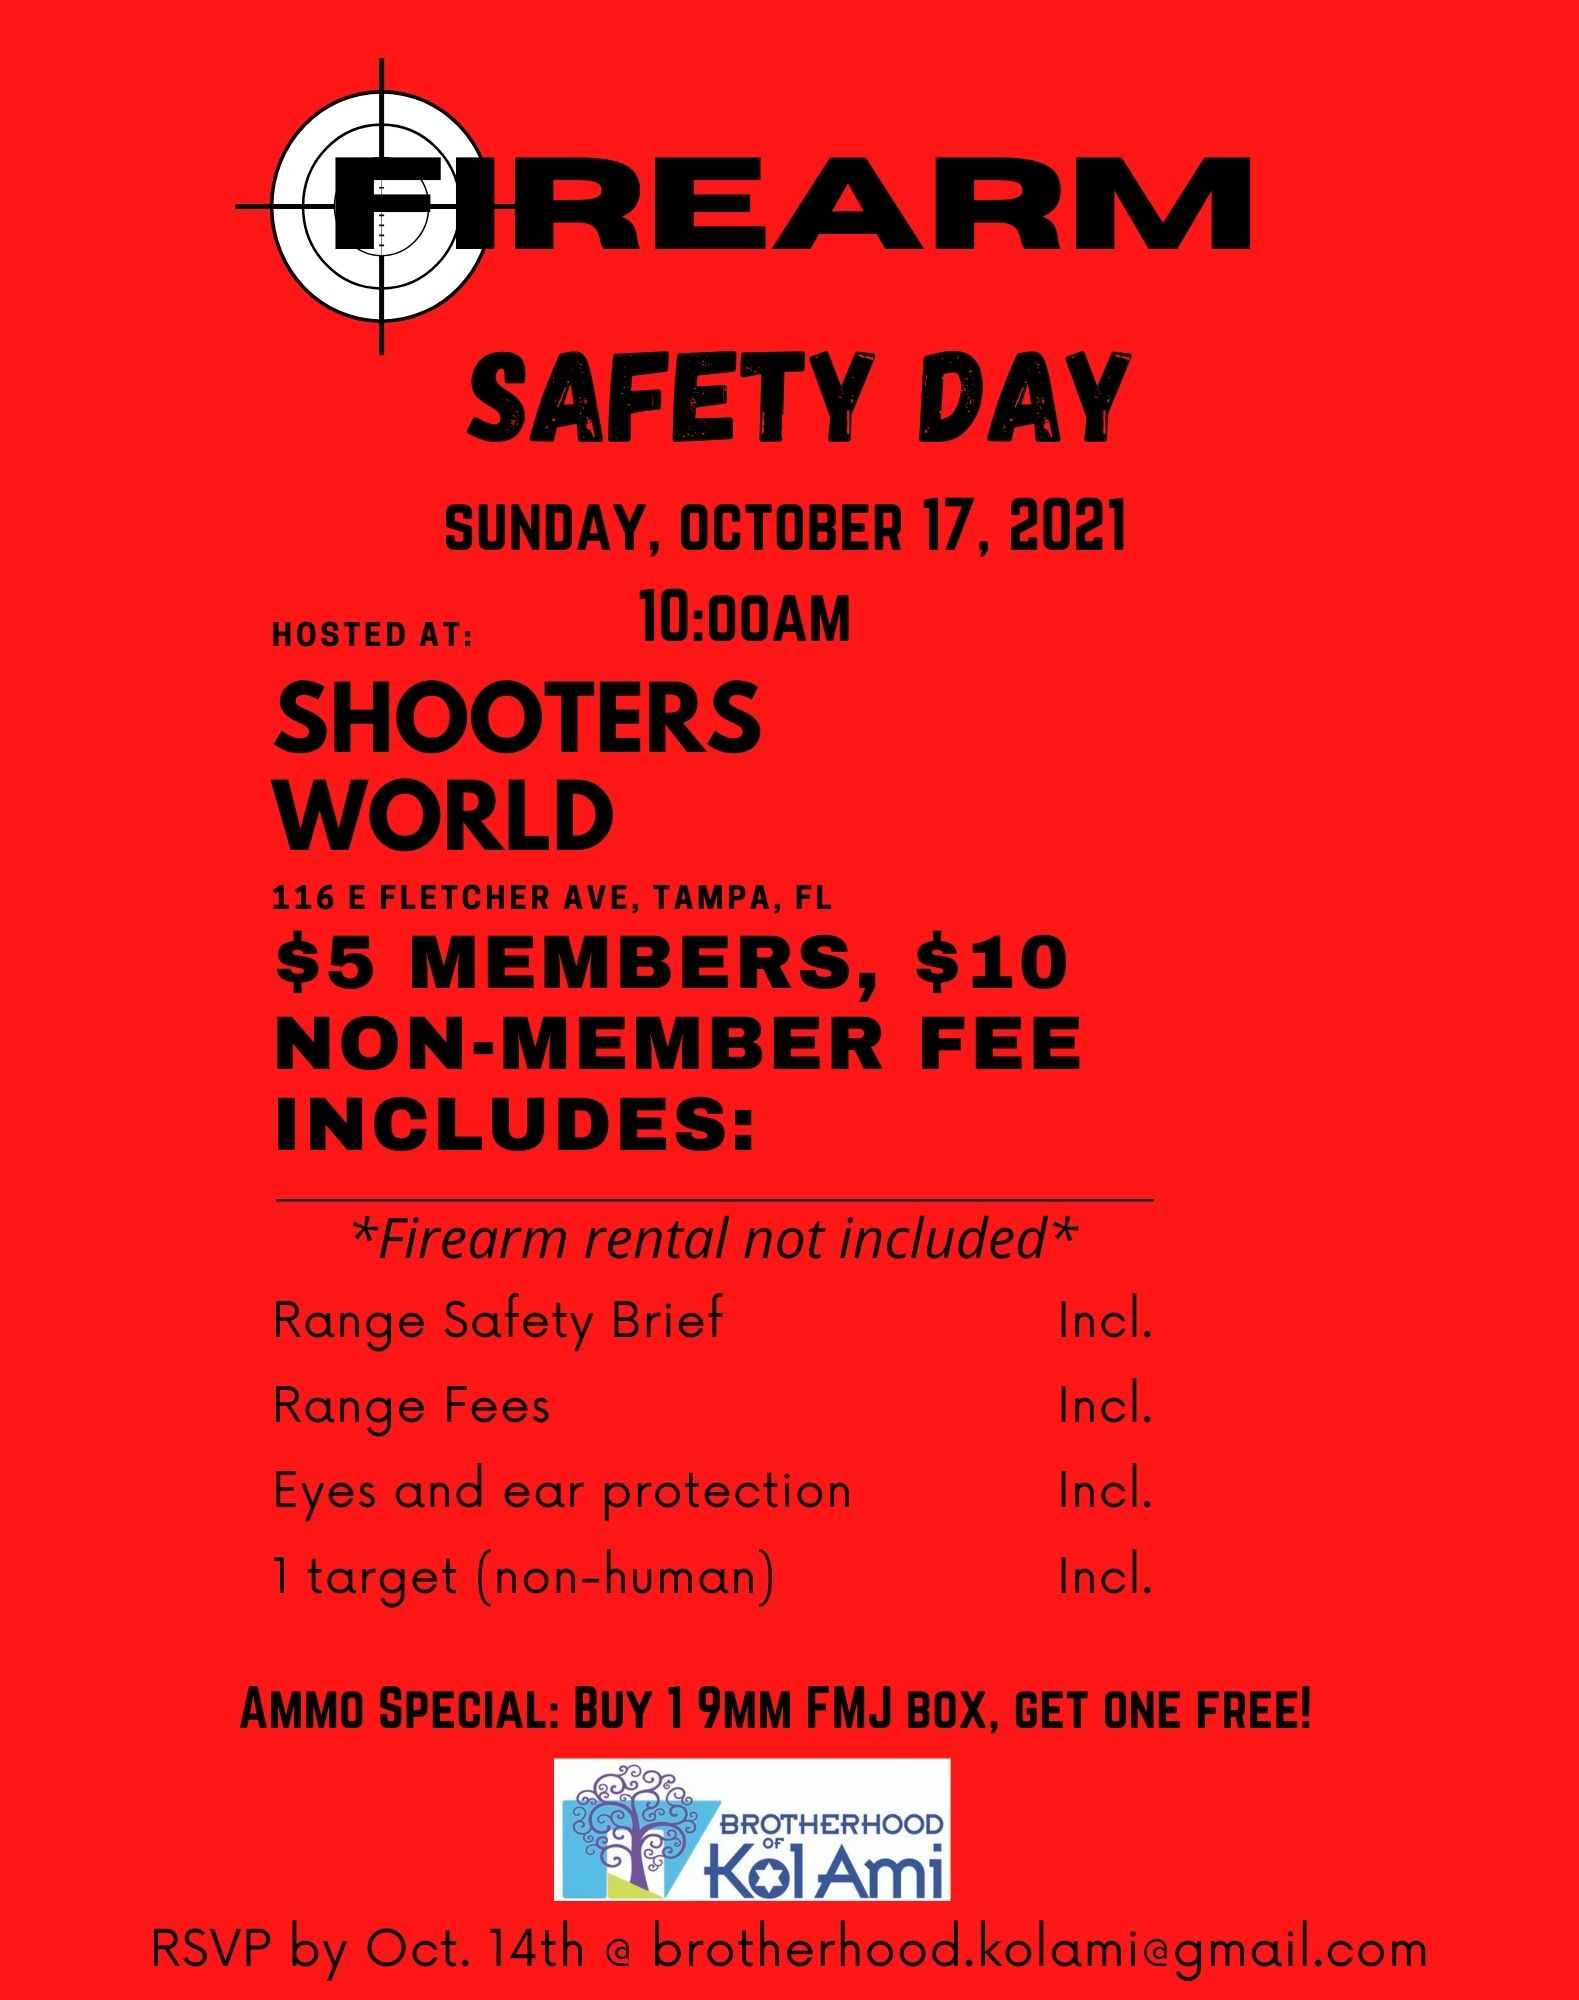 Banner Image for Brotherhood Firearm Safety Day